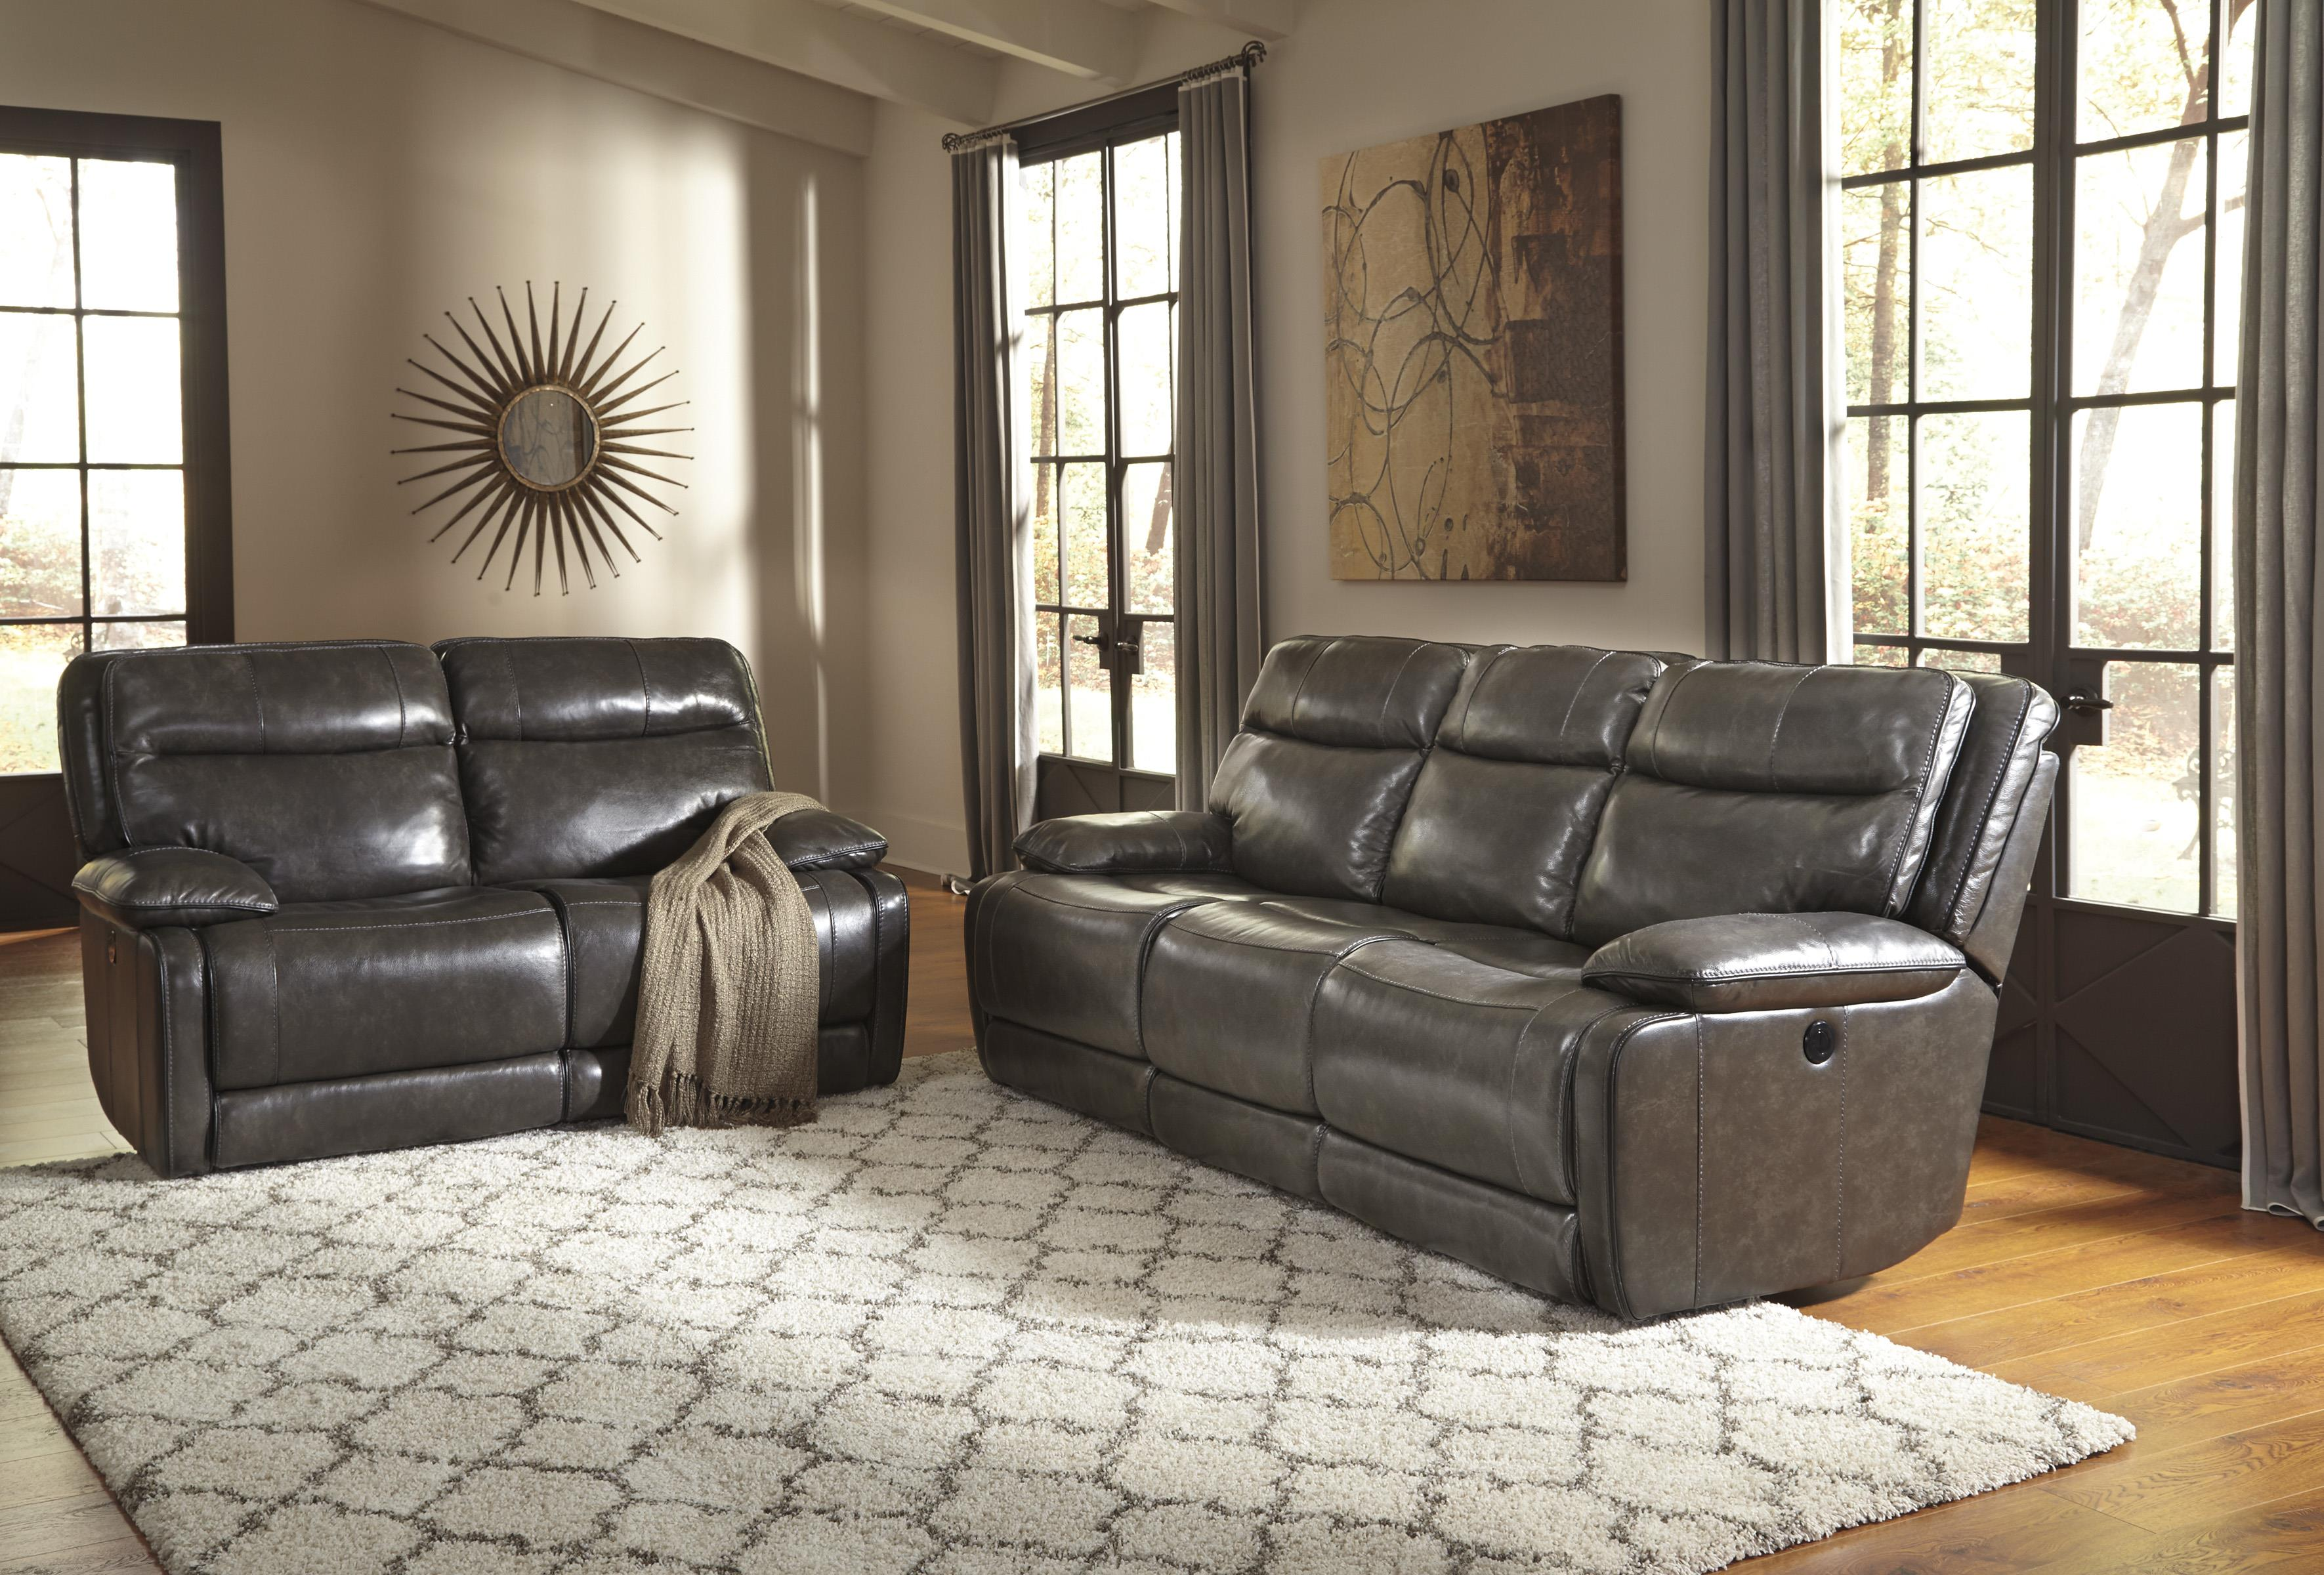 Signature Design by Ashley Palladum Reclining Living Room Group - Item Number: U72601 Living Room Group 2